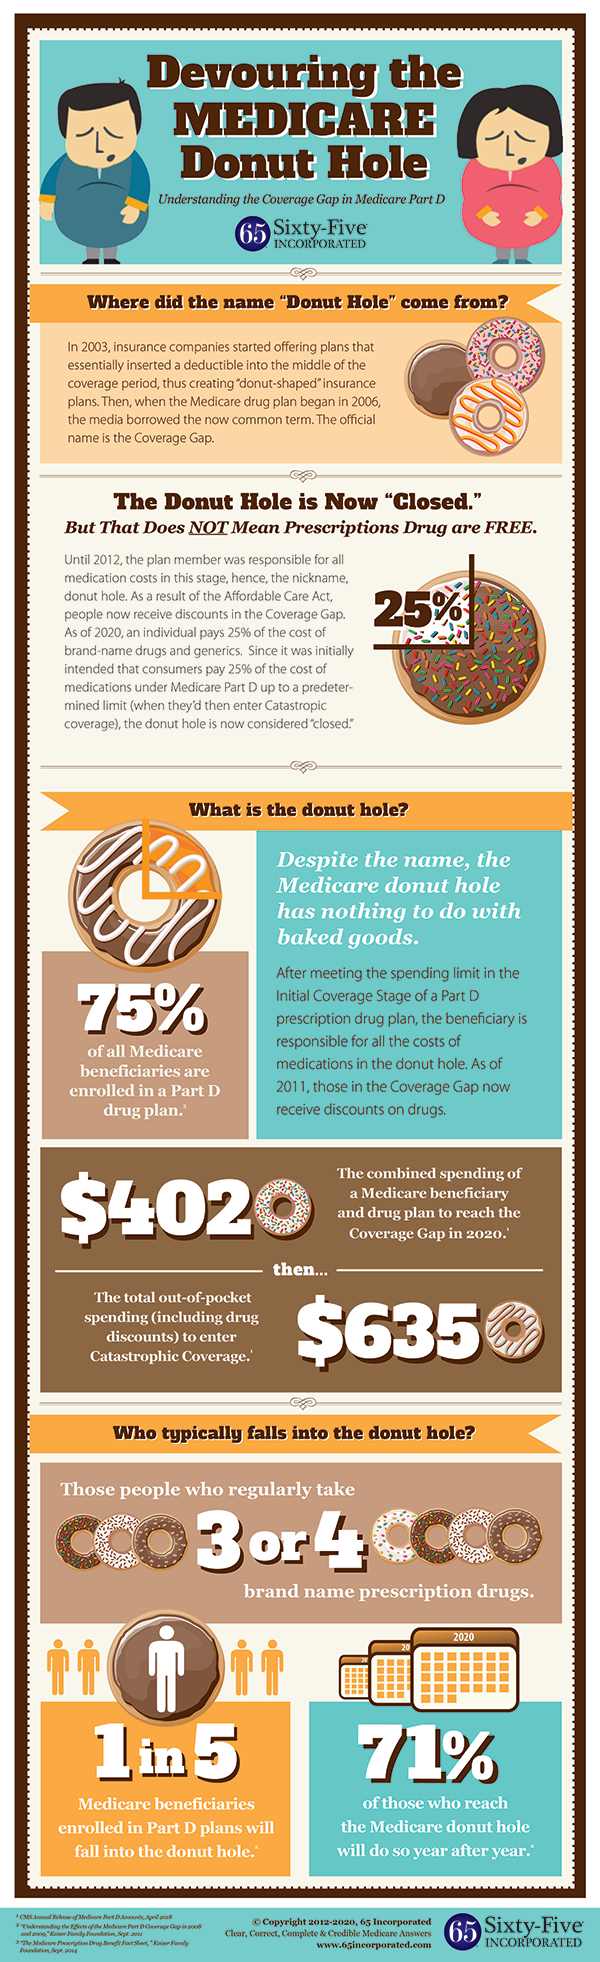 Medicare Donut Hole Coverage Gap Infographic